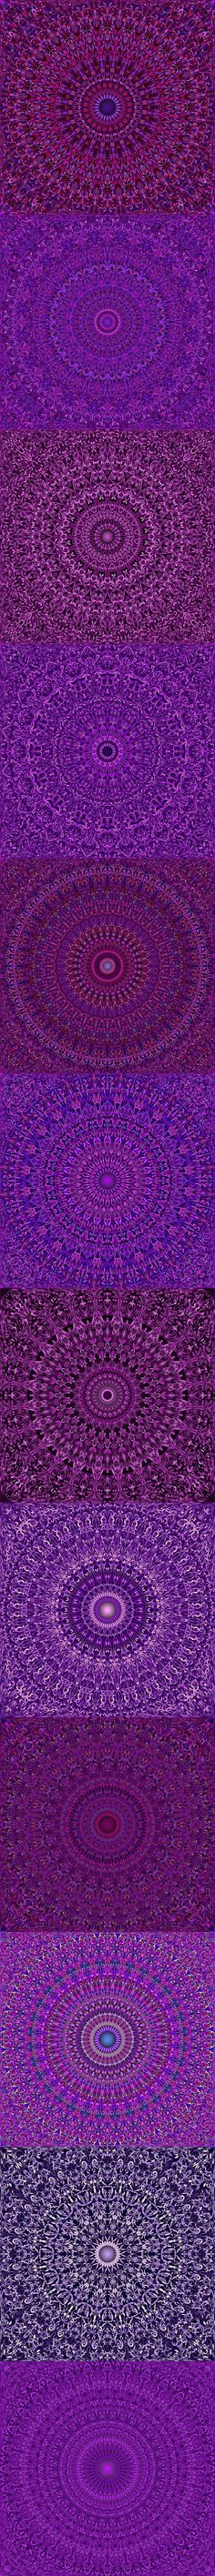 Buy 12 Purple Floral Mandala Seamless Patterns by DavidZydd on GraphicRiver. 12 seamless floral mandala pattern backgrounds in purple tones DETAILS: 12 JPG (RGB files) size: 12 geome. Mandala Pattern, Mandala Design, Mandala Art, Graphic Patterns, Color Patterns, Graphic Design, Geometric Patterns, Violet Background, Purple Backgrounds